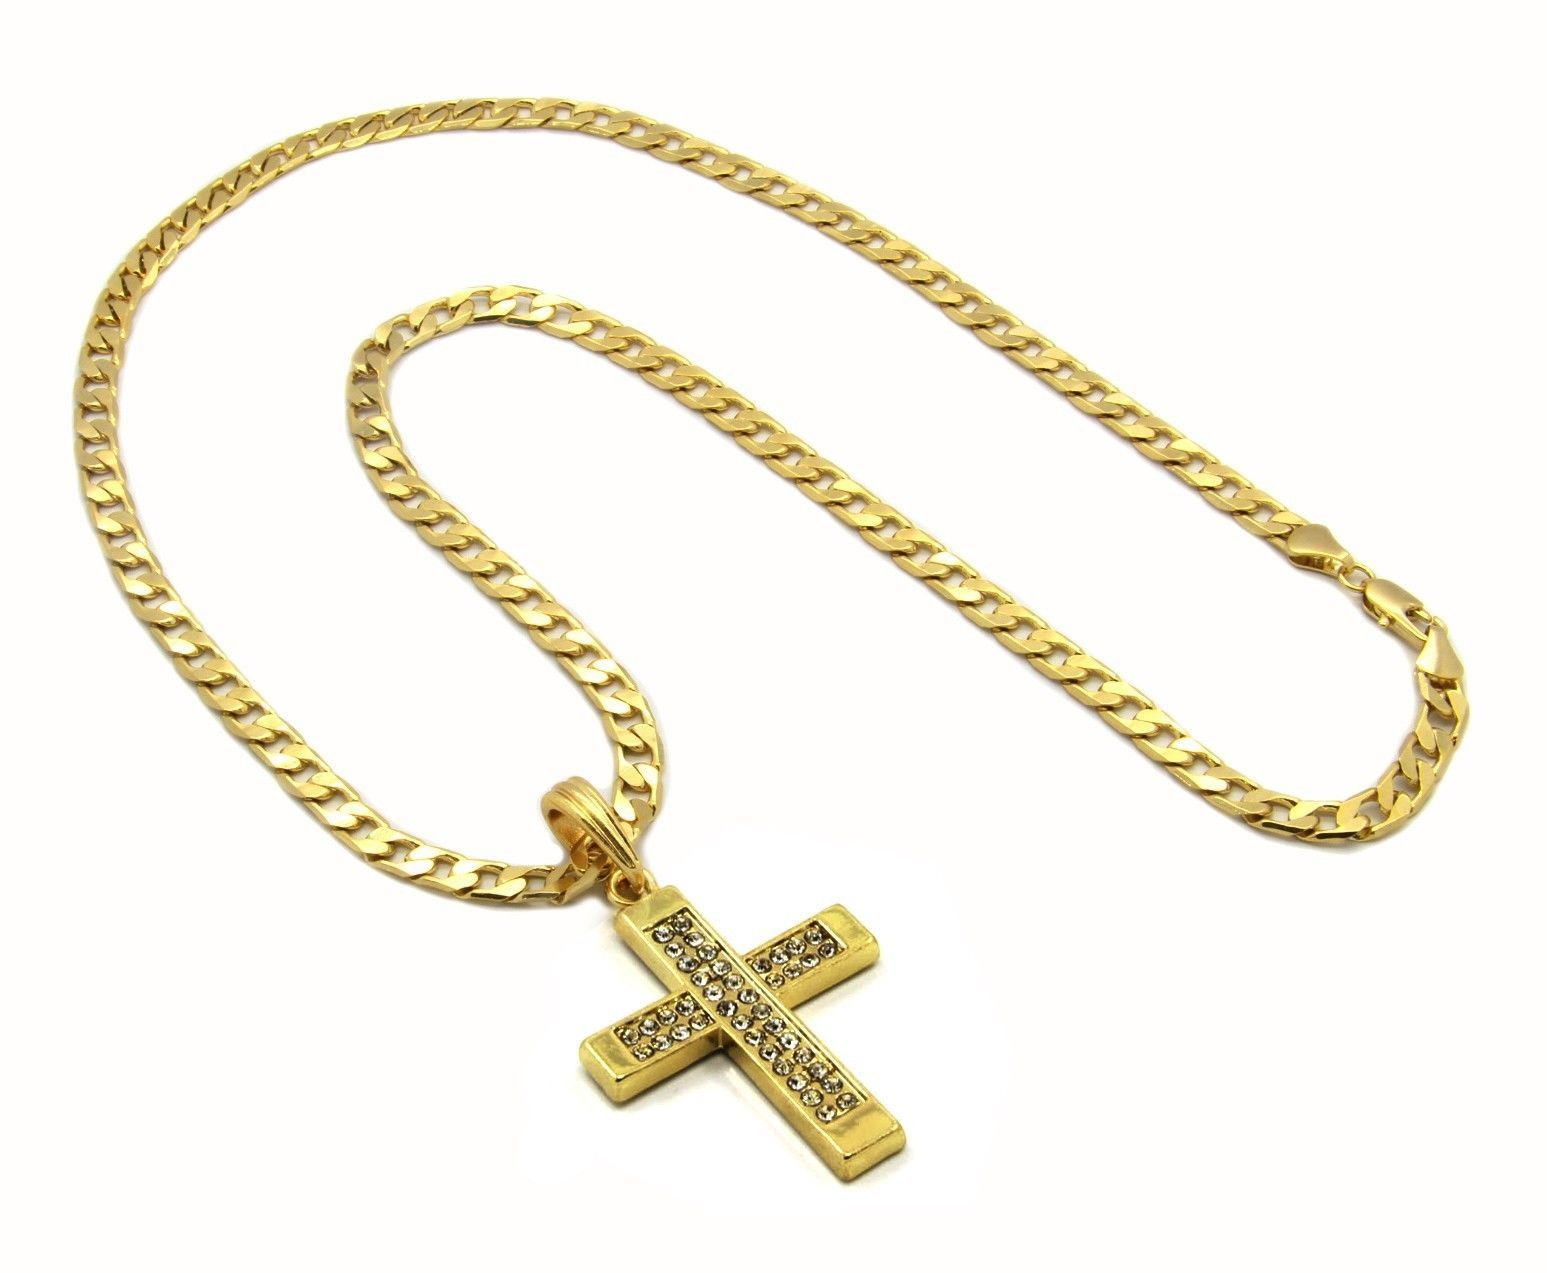 Cross Charm Gold Plated Piece Pendant Cuban Chain Necklace Jewelry 0007